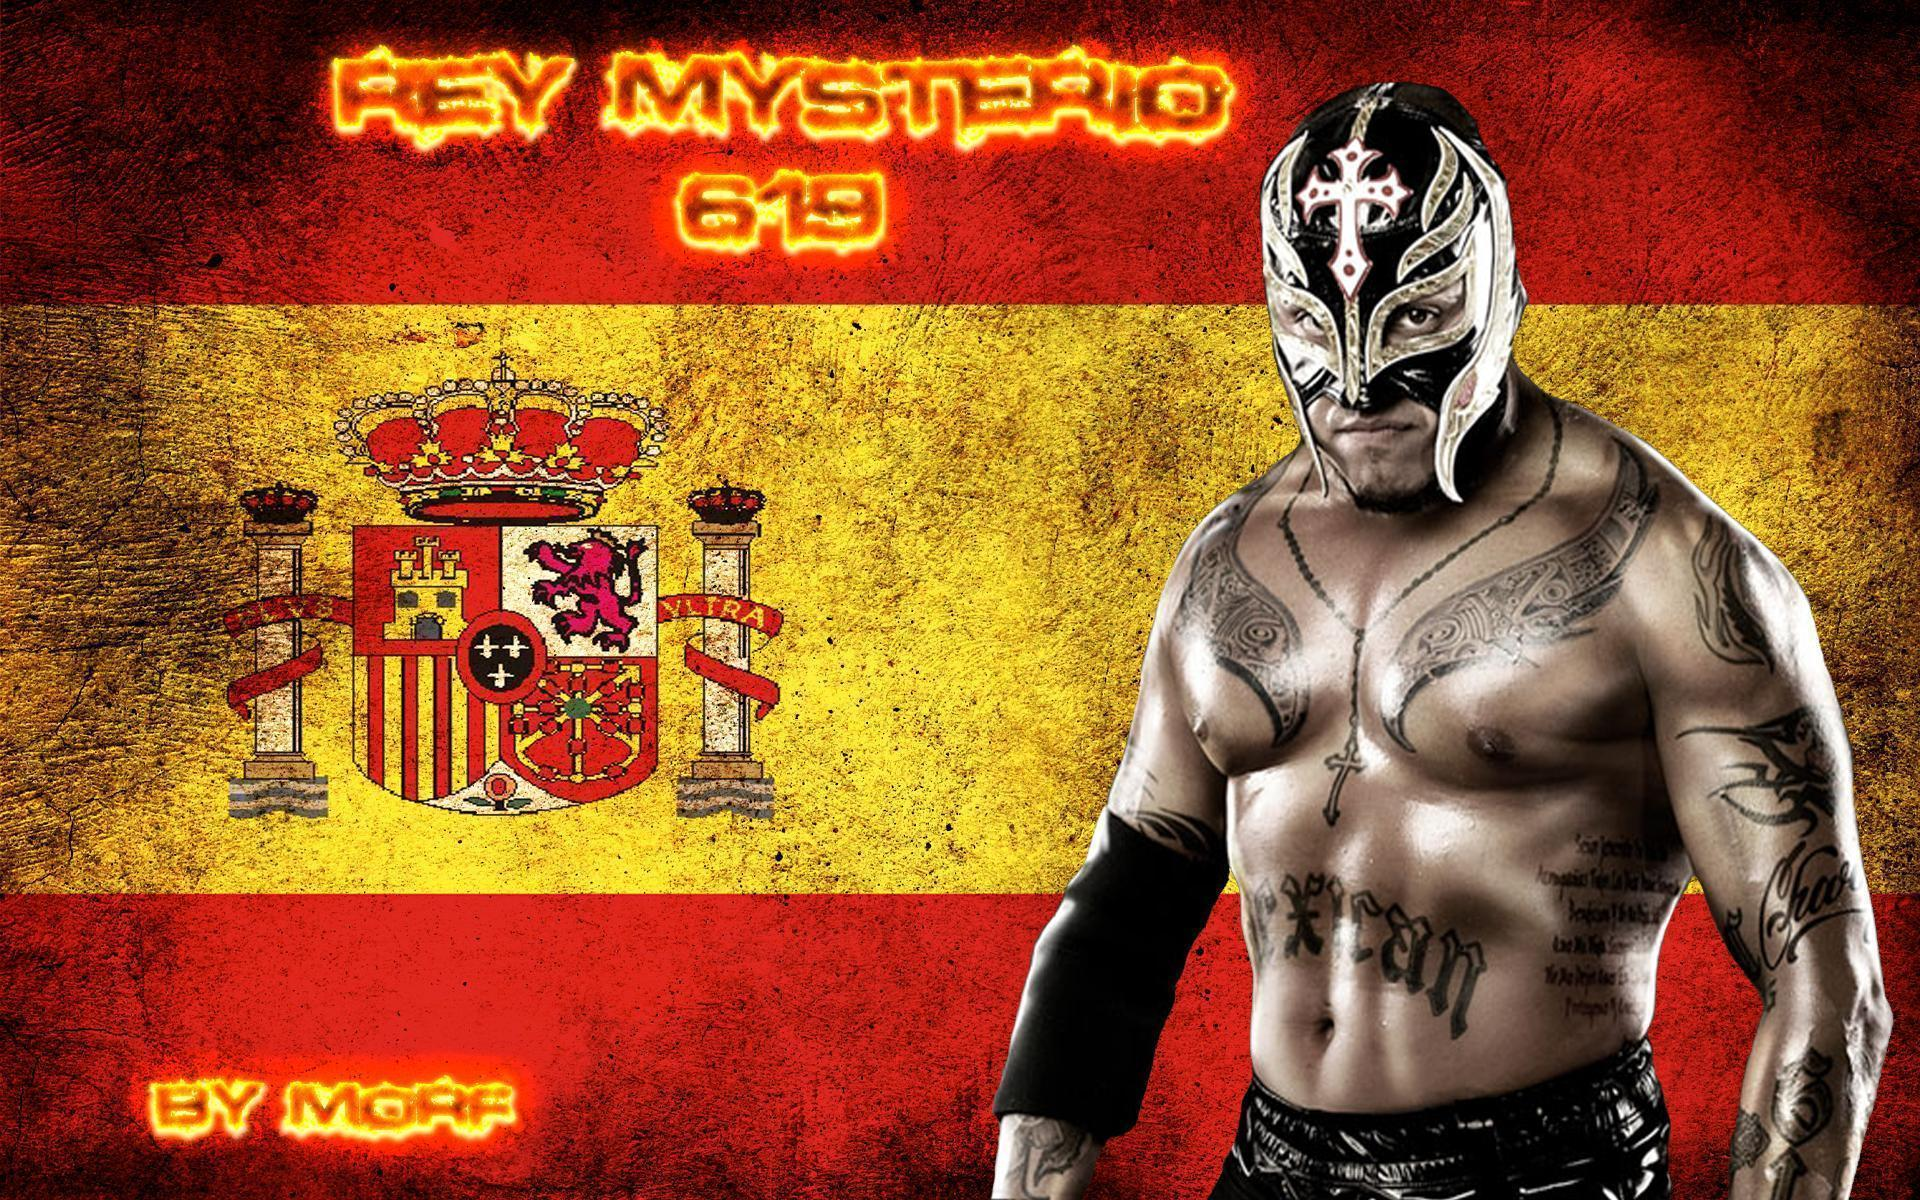 Rey Mysterio Wallpapers - Wallpaper Cave